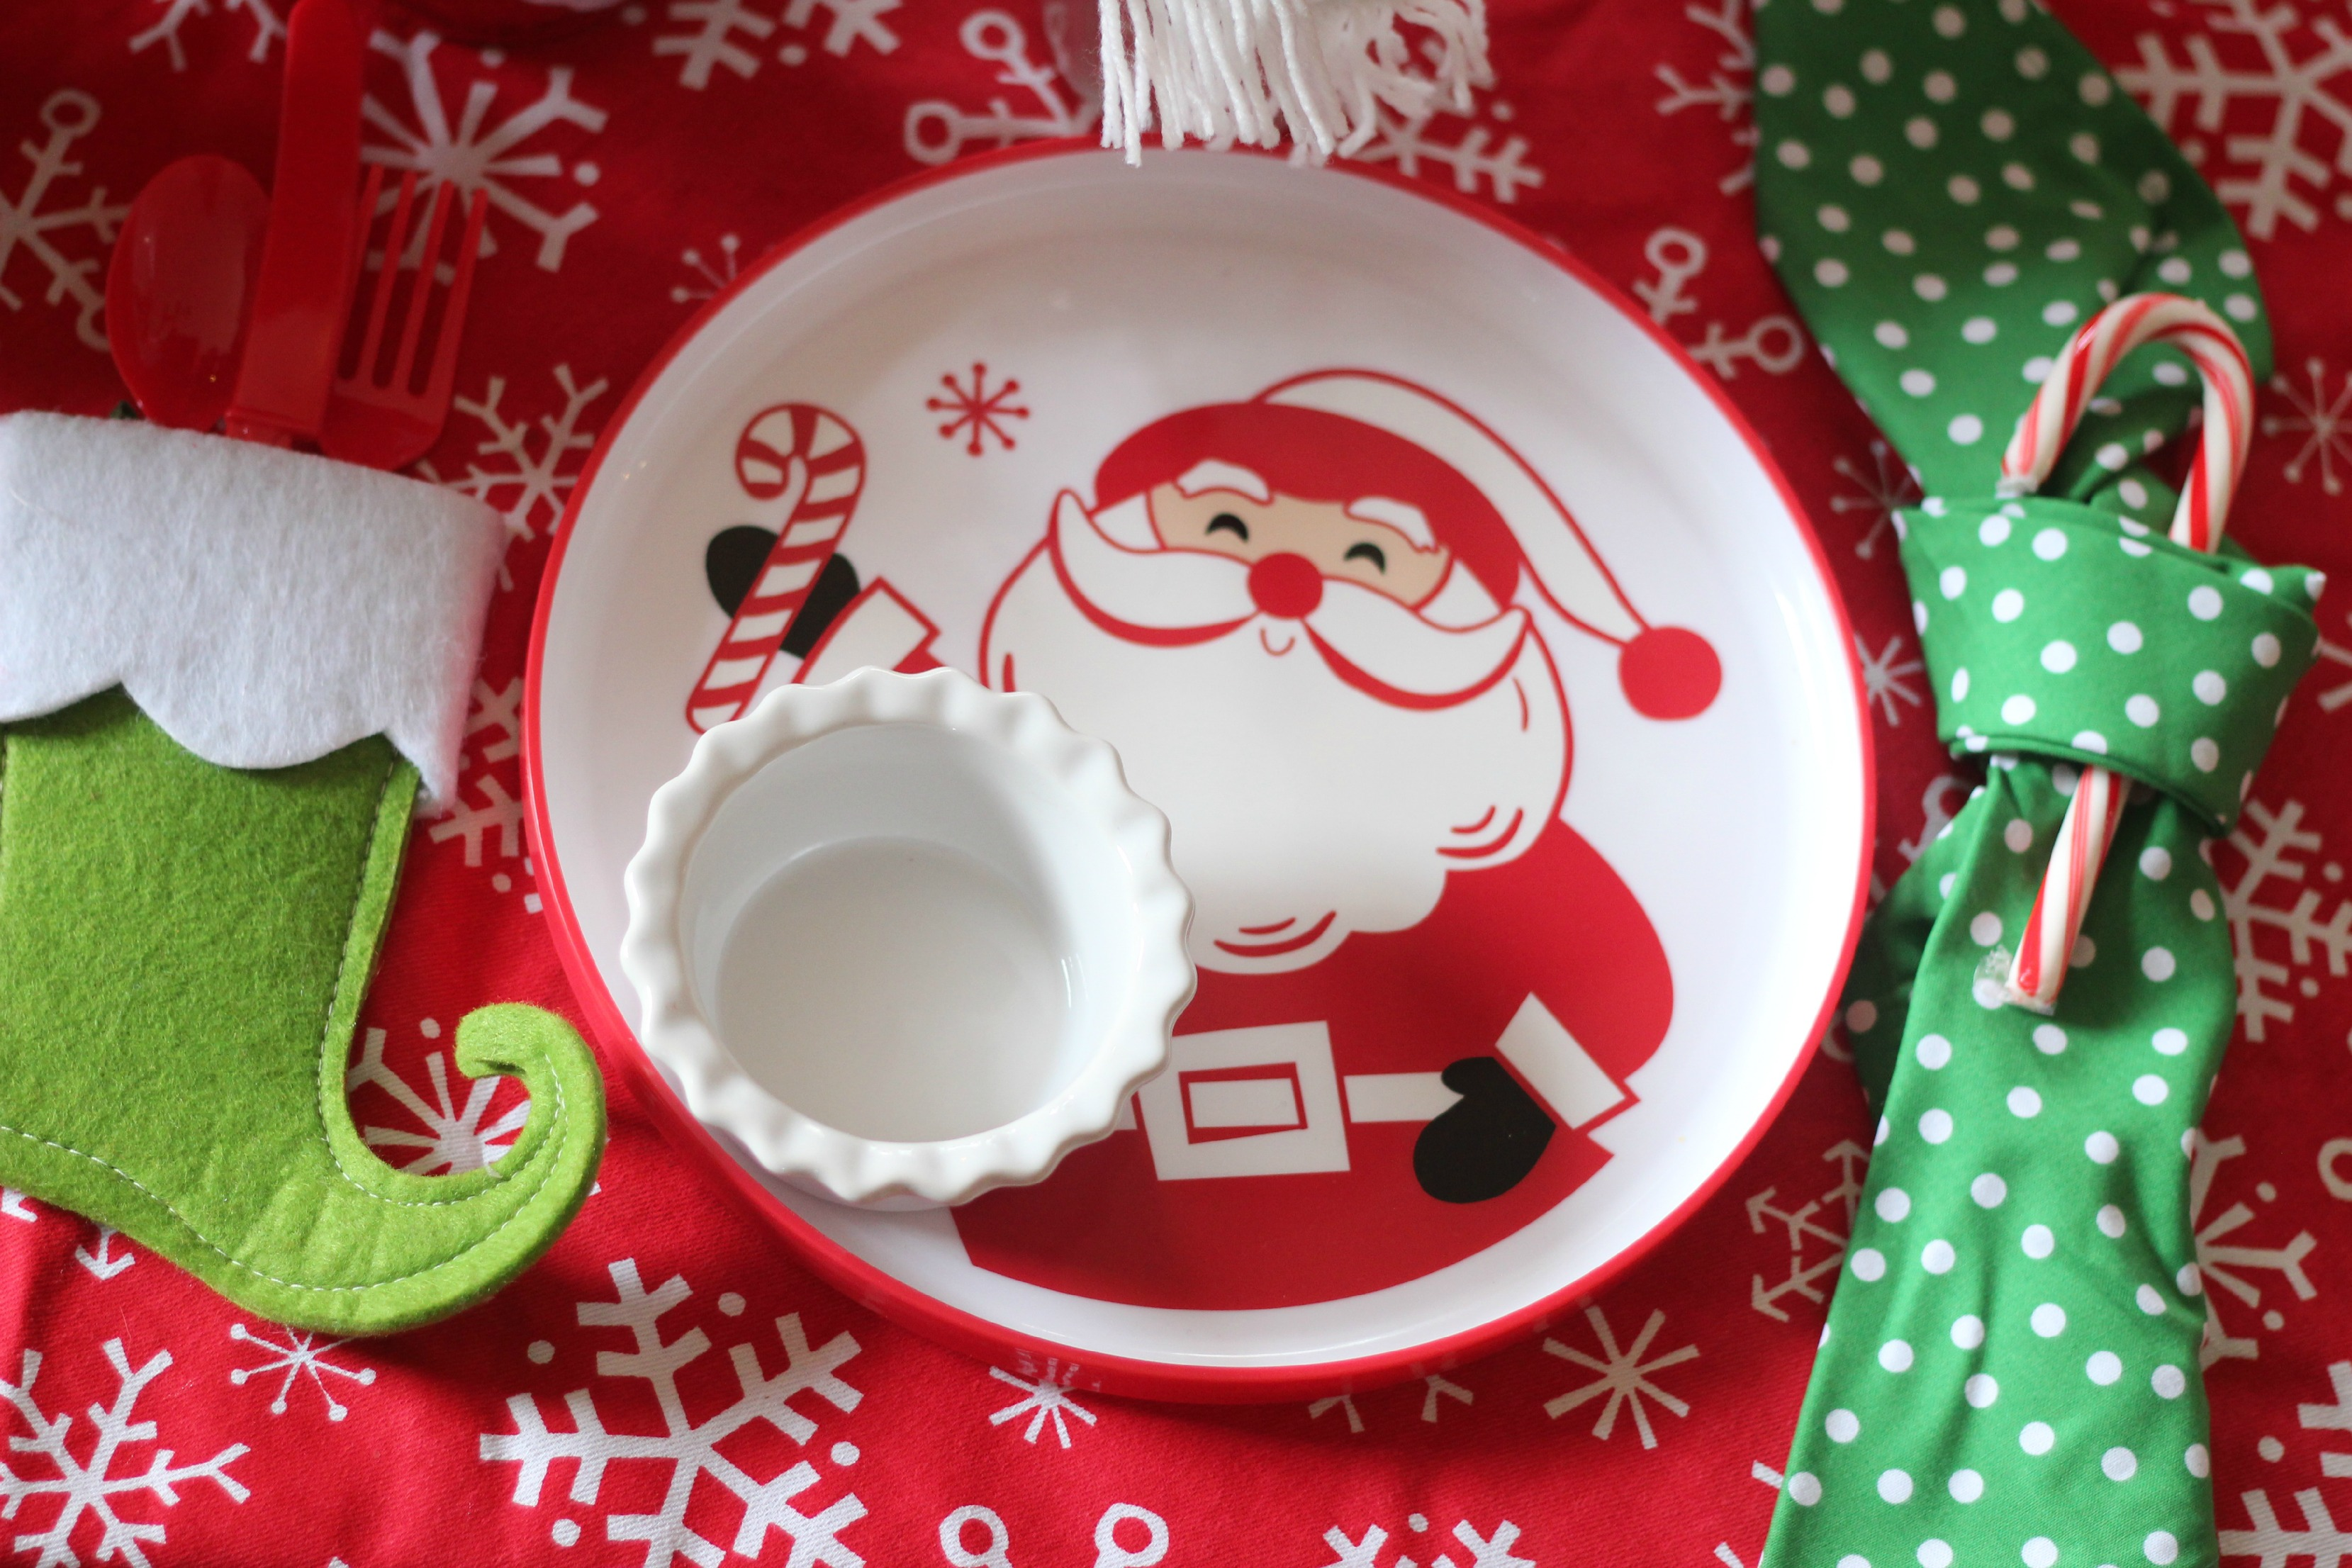 North Pole Breakfast: Welcome Back, Elf On The Shelf!